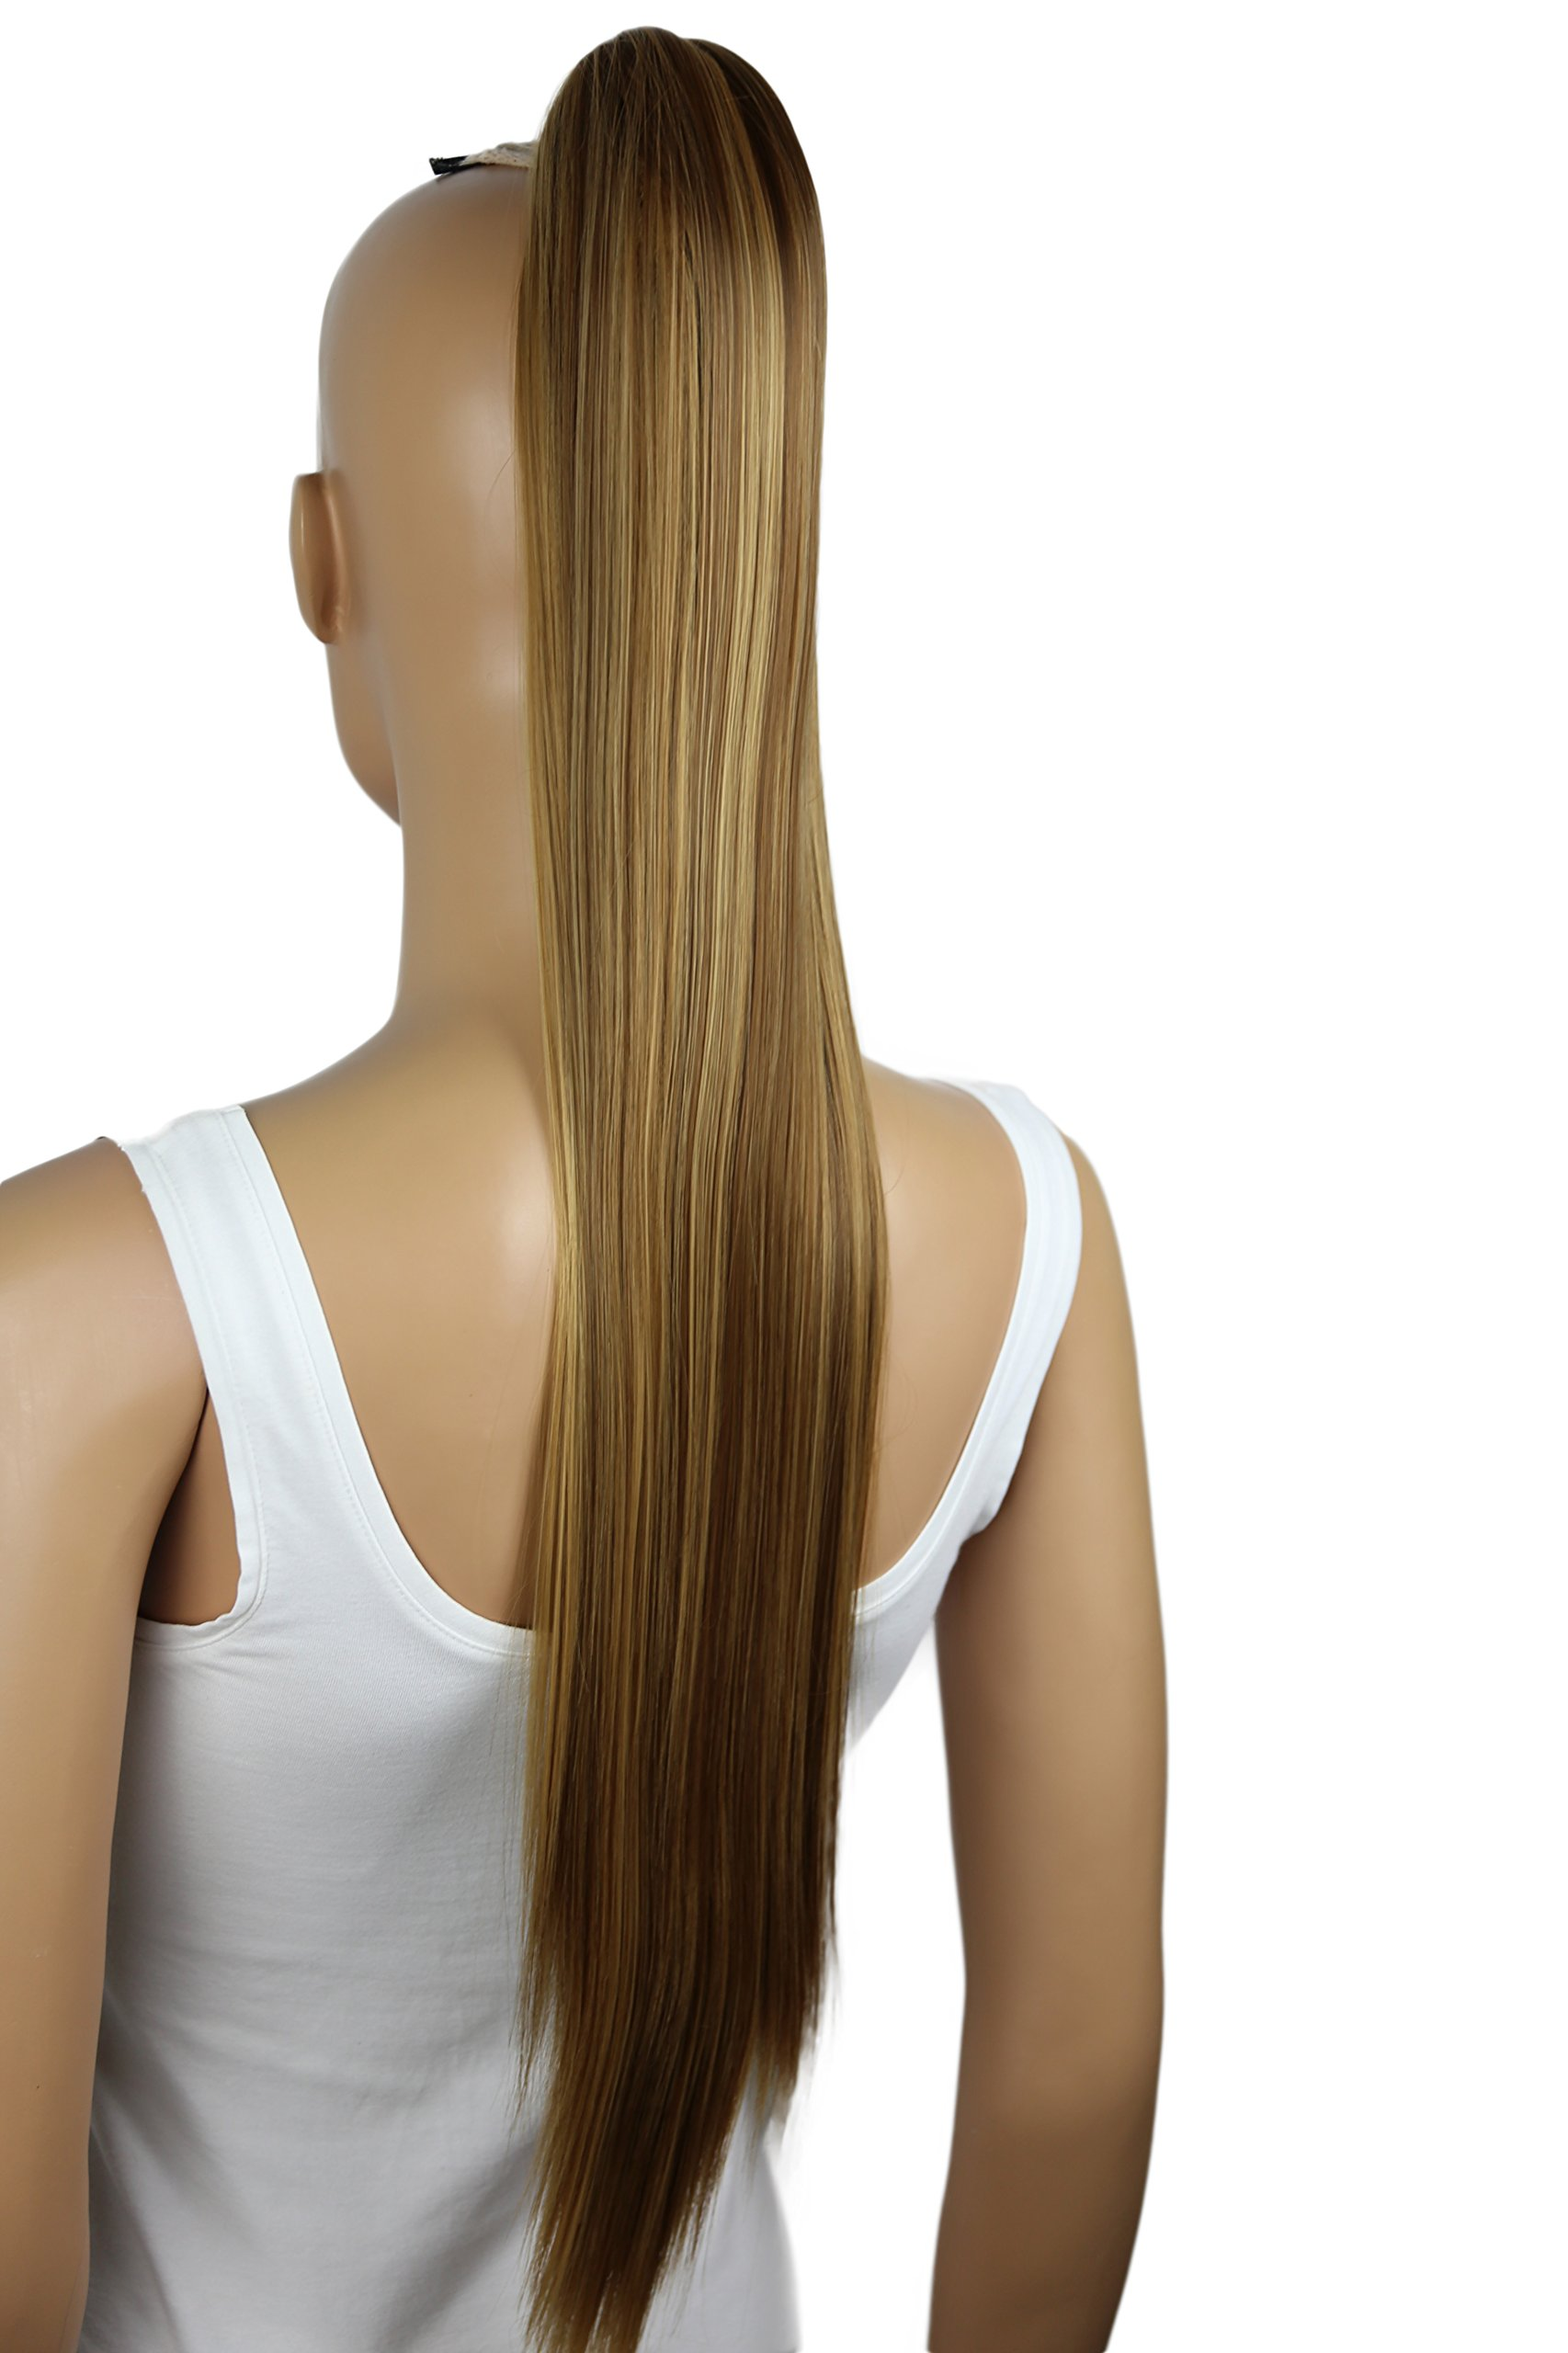 PRETTYSHOP Hairpiece Ponytail Clip on Extension Long hair smooth Heat-Resisting 27'' brown blond mix # 6H27 H165 by Prettyshop Hairpiece-Ponytail (Image #3)